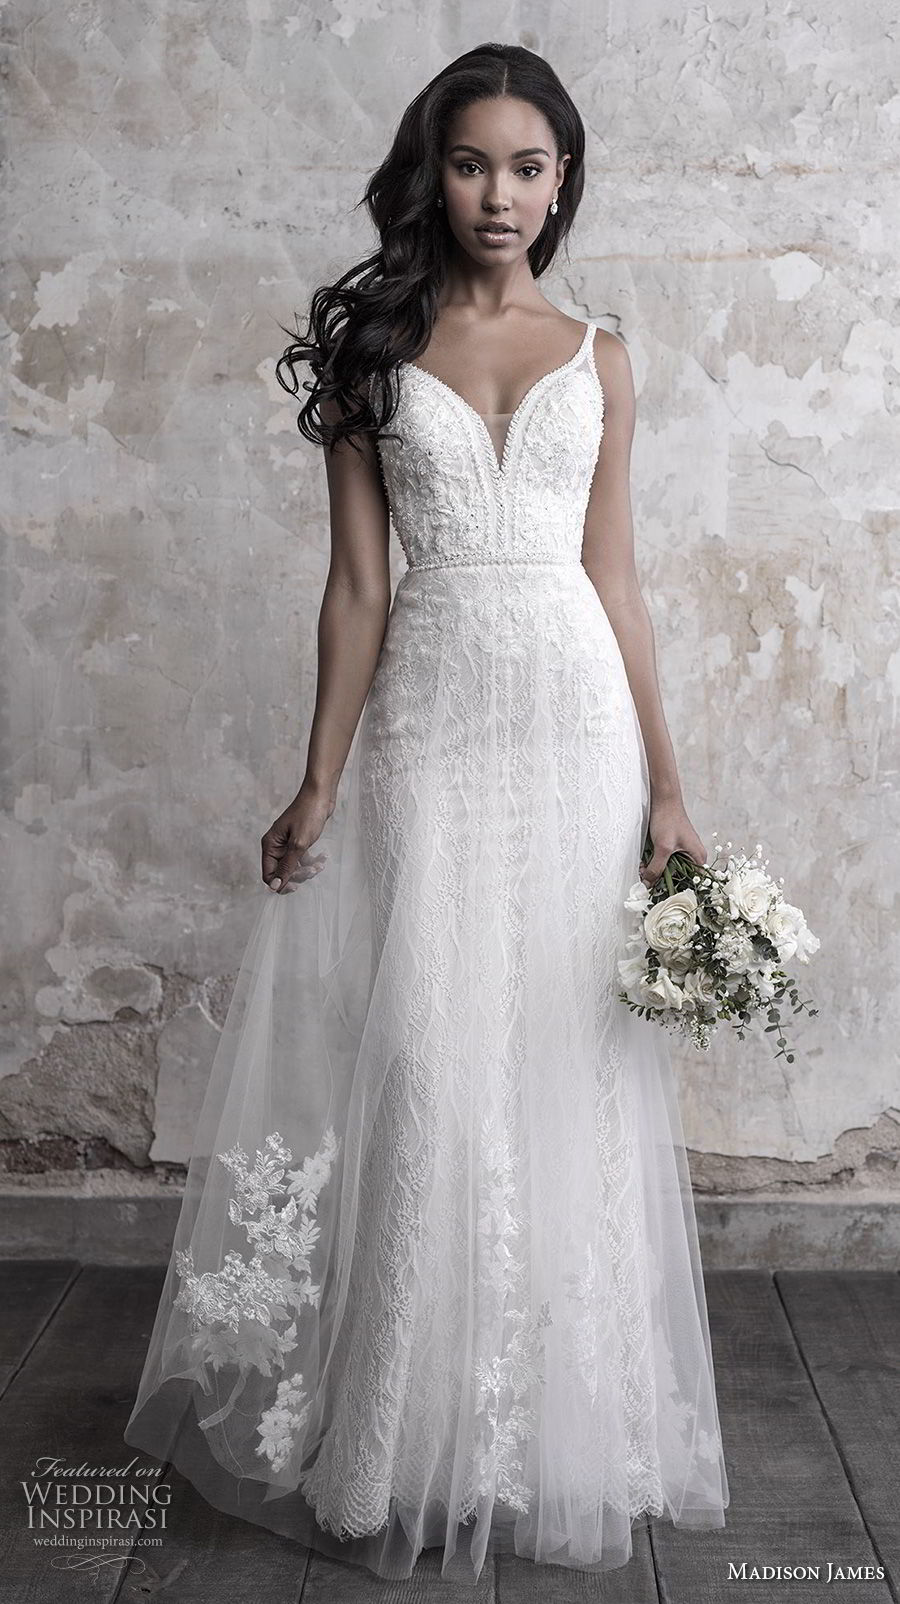 madison james fall 2018 bridal sleeveless thin strap deep sweetheart neckline full embellishment tulle skirt romantic soft a line wedding dress open back chapel train (3) mv